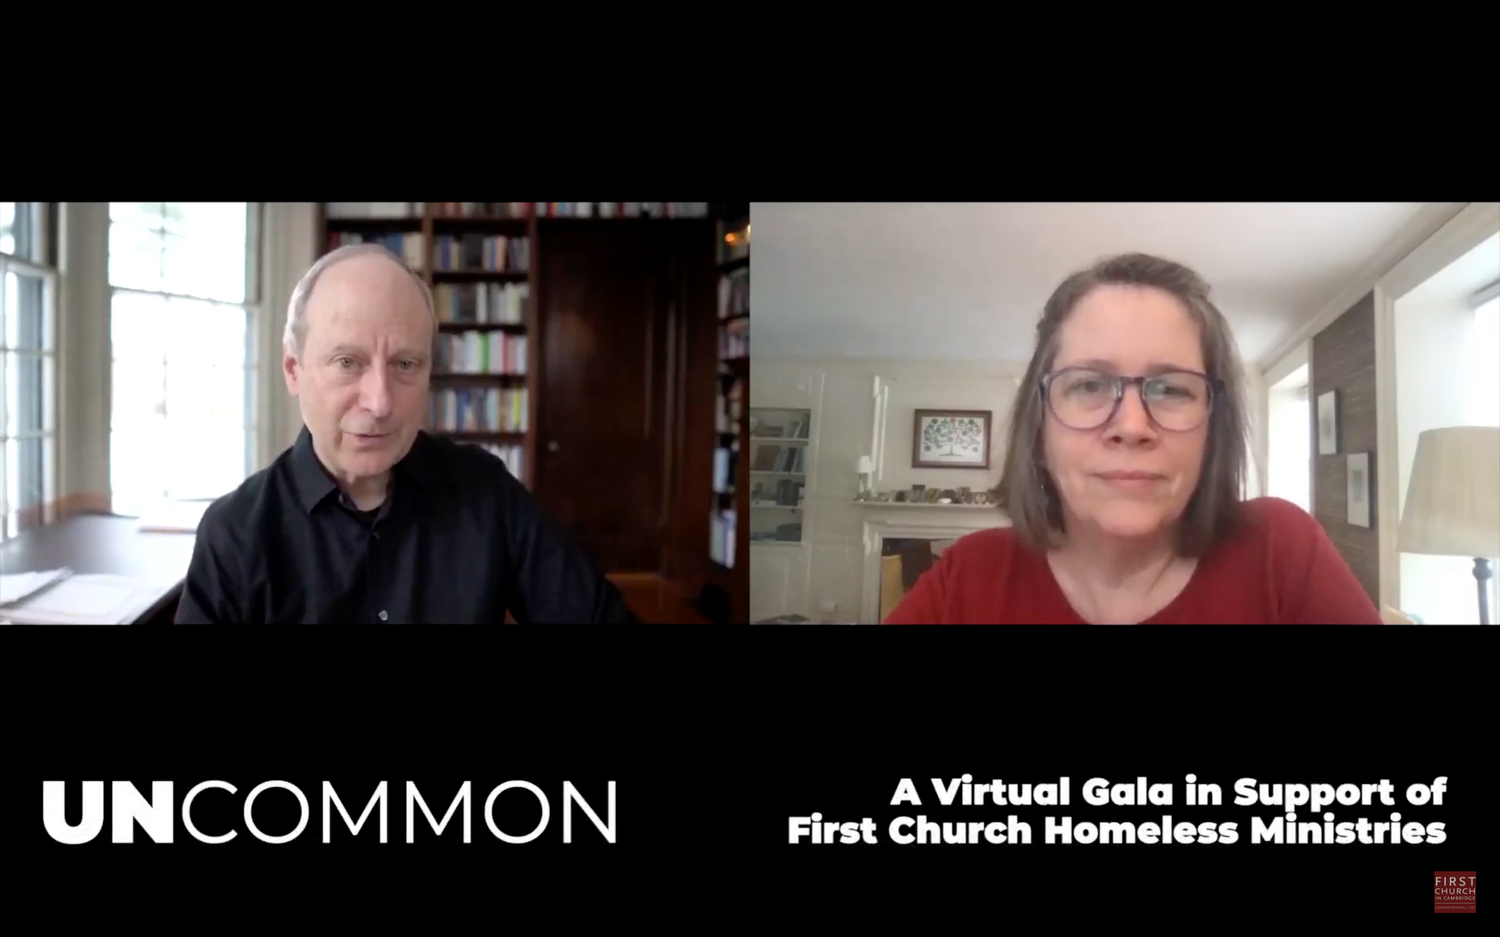 Harvard Government professor Michael J. Sandel, left, spoke at a fundraiser benefitting homeless programs at the First Church in Cambridge. Sandel was interviewed by Divinity School professor and Interim Minister of Memorial Church Stephanie A. Paulsell.